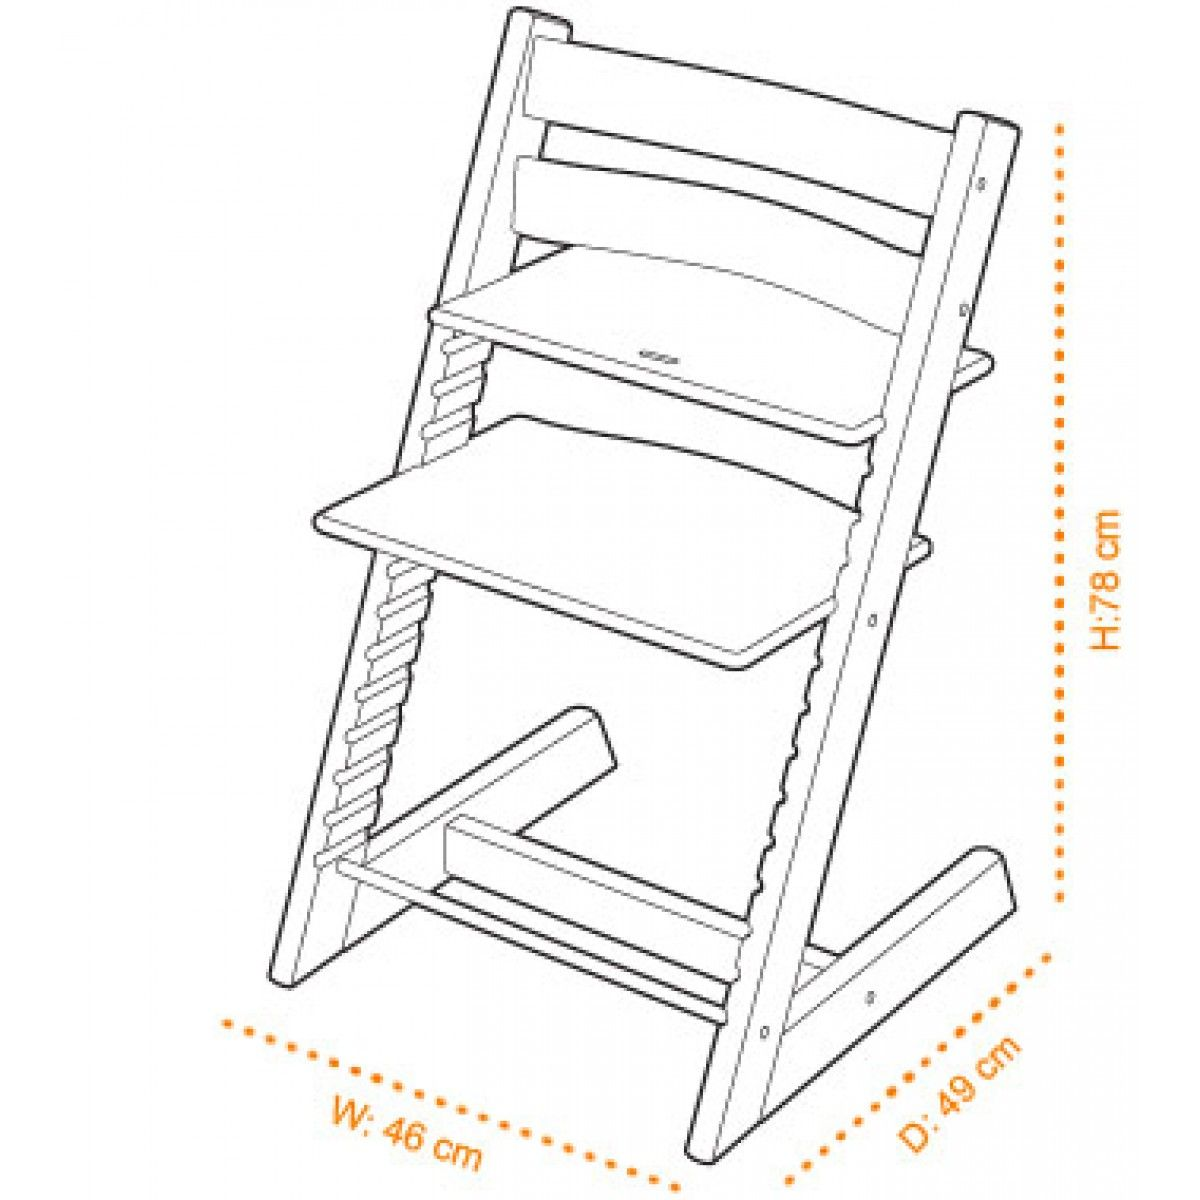 3 in one high chair plans inexpensive ergonomic chairs stokke tripp trapp baby enroute kids food